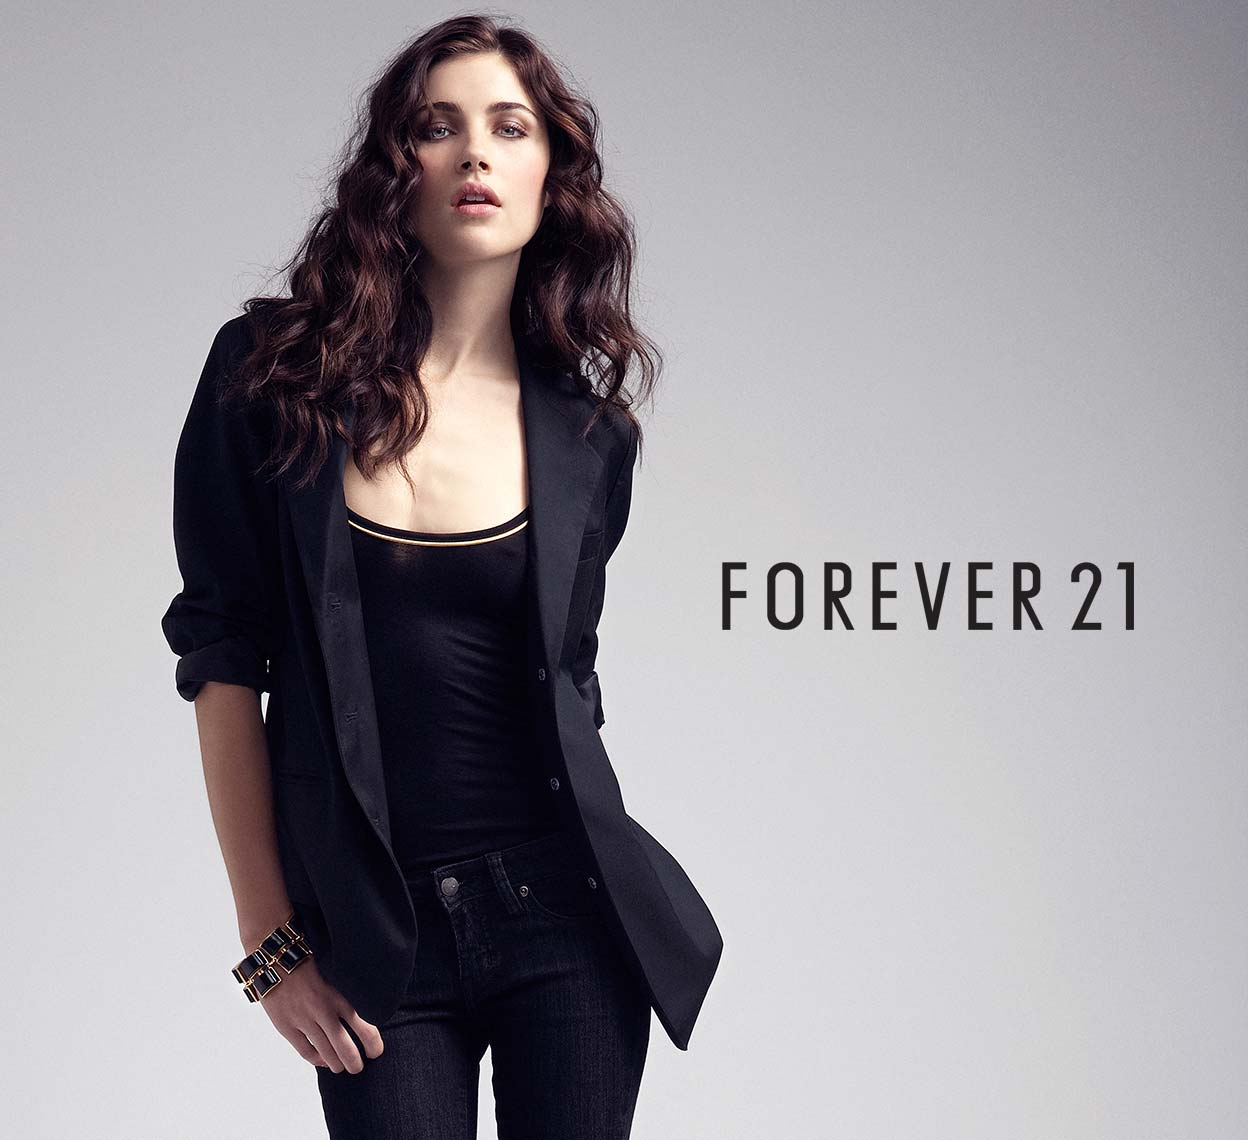 CHRIS-HUNT-FASHION-PHOTOGRAPHY-FOREVER-21-ADVERTISING-STUDIO-0040